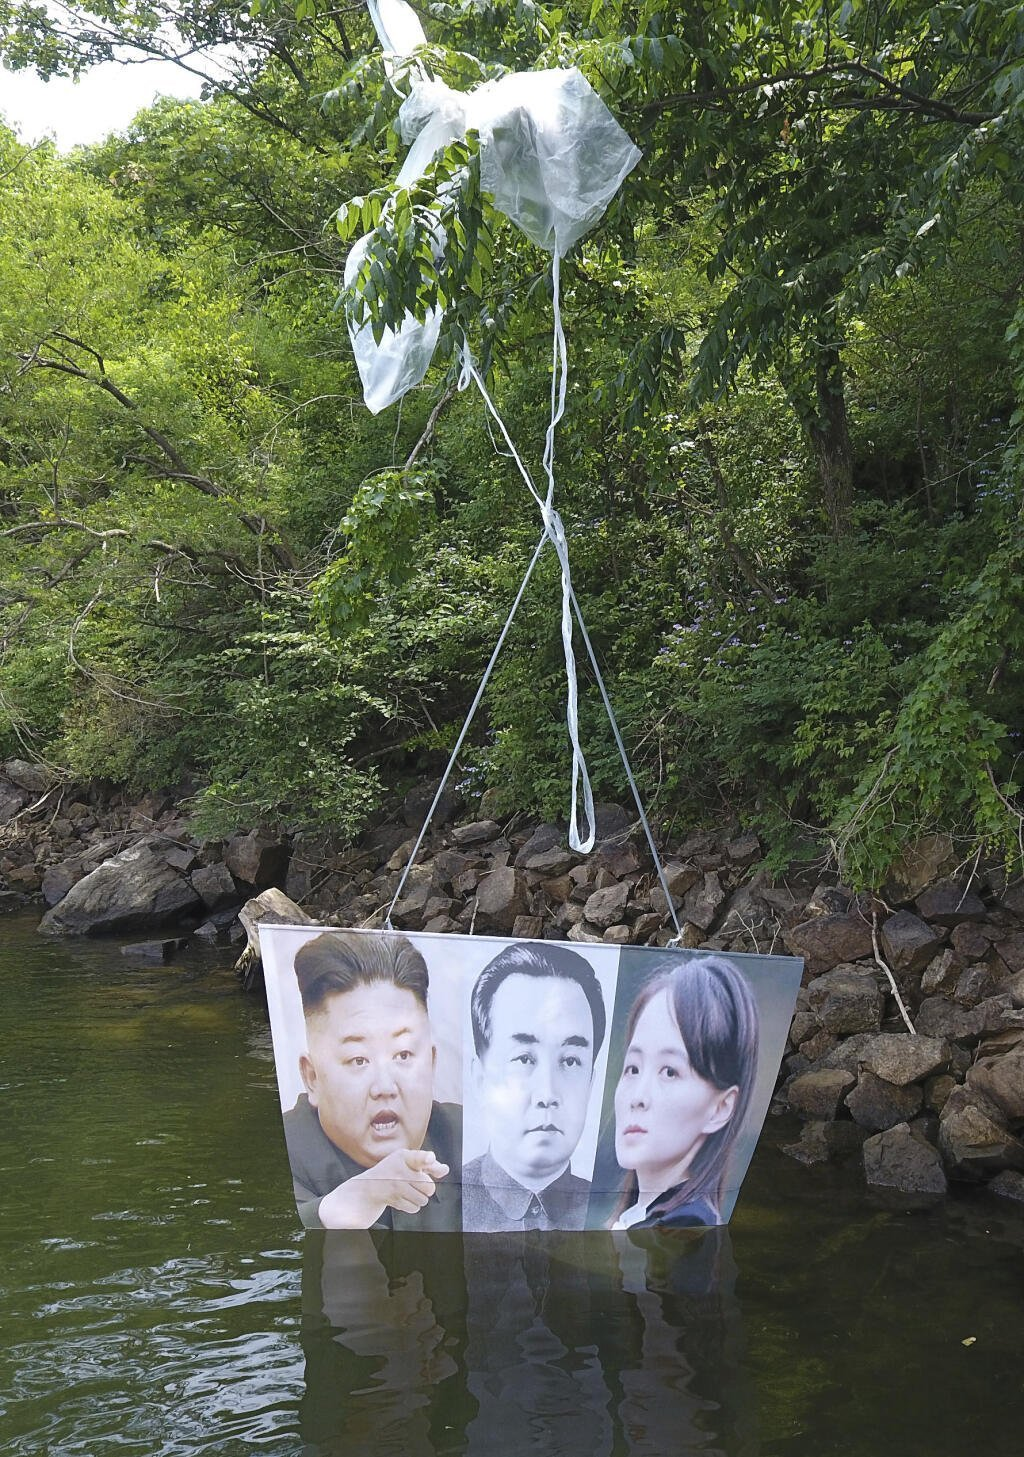 This photo, taken on June 23, 2020, shows a balloon containing anti-Pyongyang leaflets found at a mountain in Hongcheon, a town in South Korea's northeastern province of Gangwon. Tied to the balloon are photos of the North's leader Kim Jong-un, his late grandfather and the North's founder Kim Il-sung and his sister Kim Yo-jong. Fighters for a Free North Korea, a Seoul-based organization of North Korean defectors advocating for North Korean human rights, claimed it sent such balloons toward North Korea from the South Korean border town of Paju, north of Seoul, the previous day. (Yonhap)